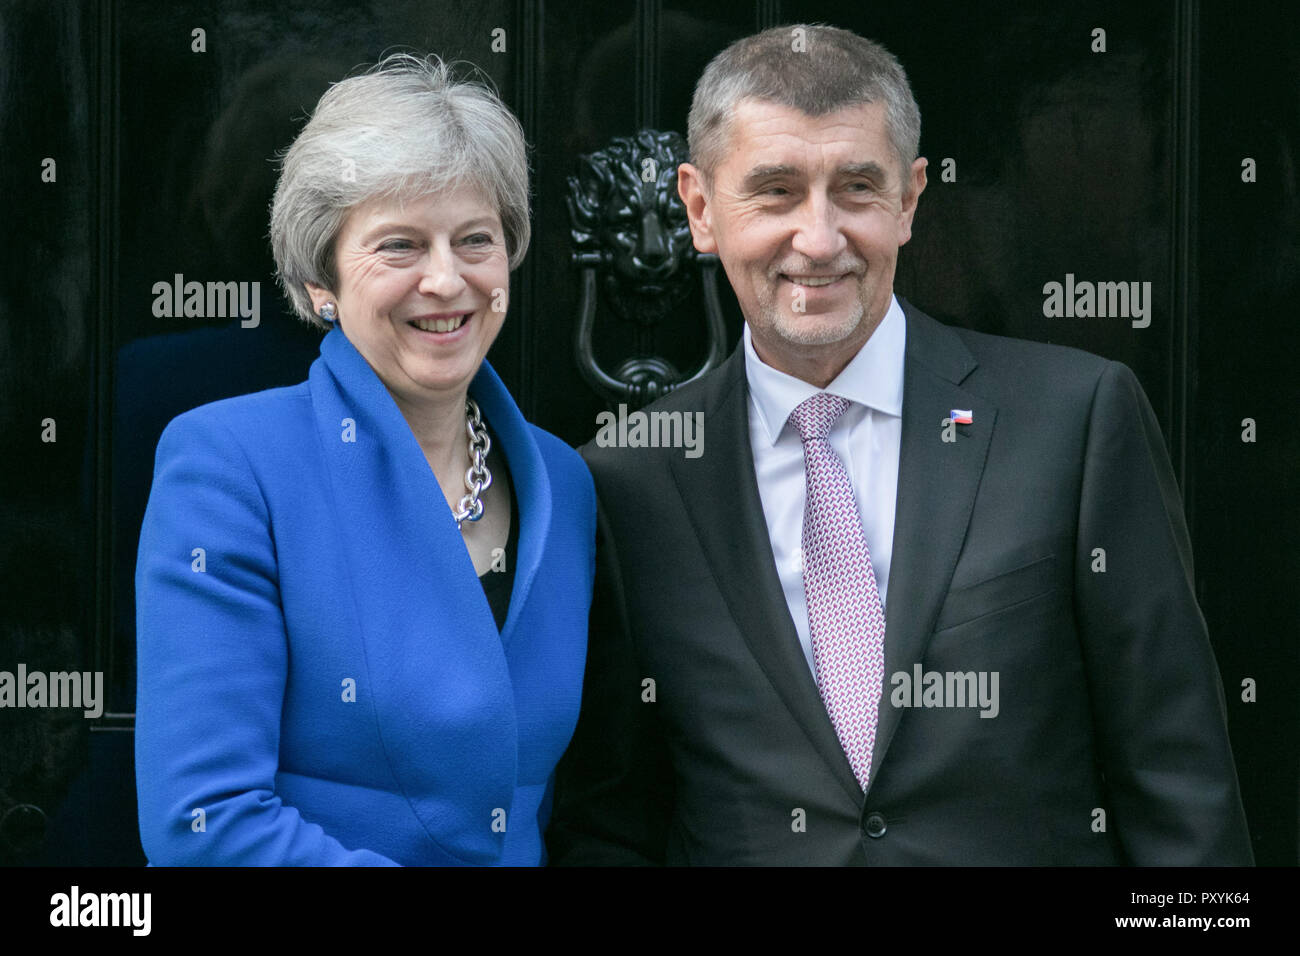 The Prime Minister of the Czech Republic, Andrej Babiš is welcomed at Downing Street By Theresa May who are expected to discuss Brexit during their bilateral meeting at Number 10Credit: amer ghazzal/Alamy Live News - Stock Image